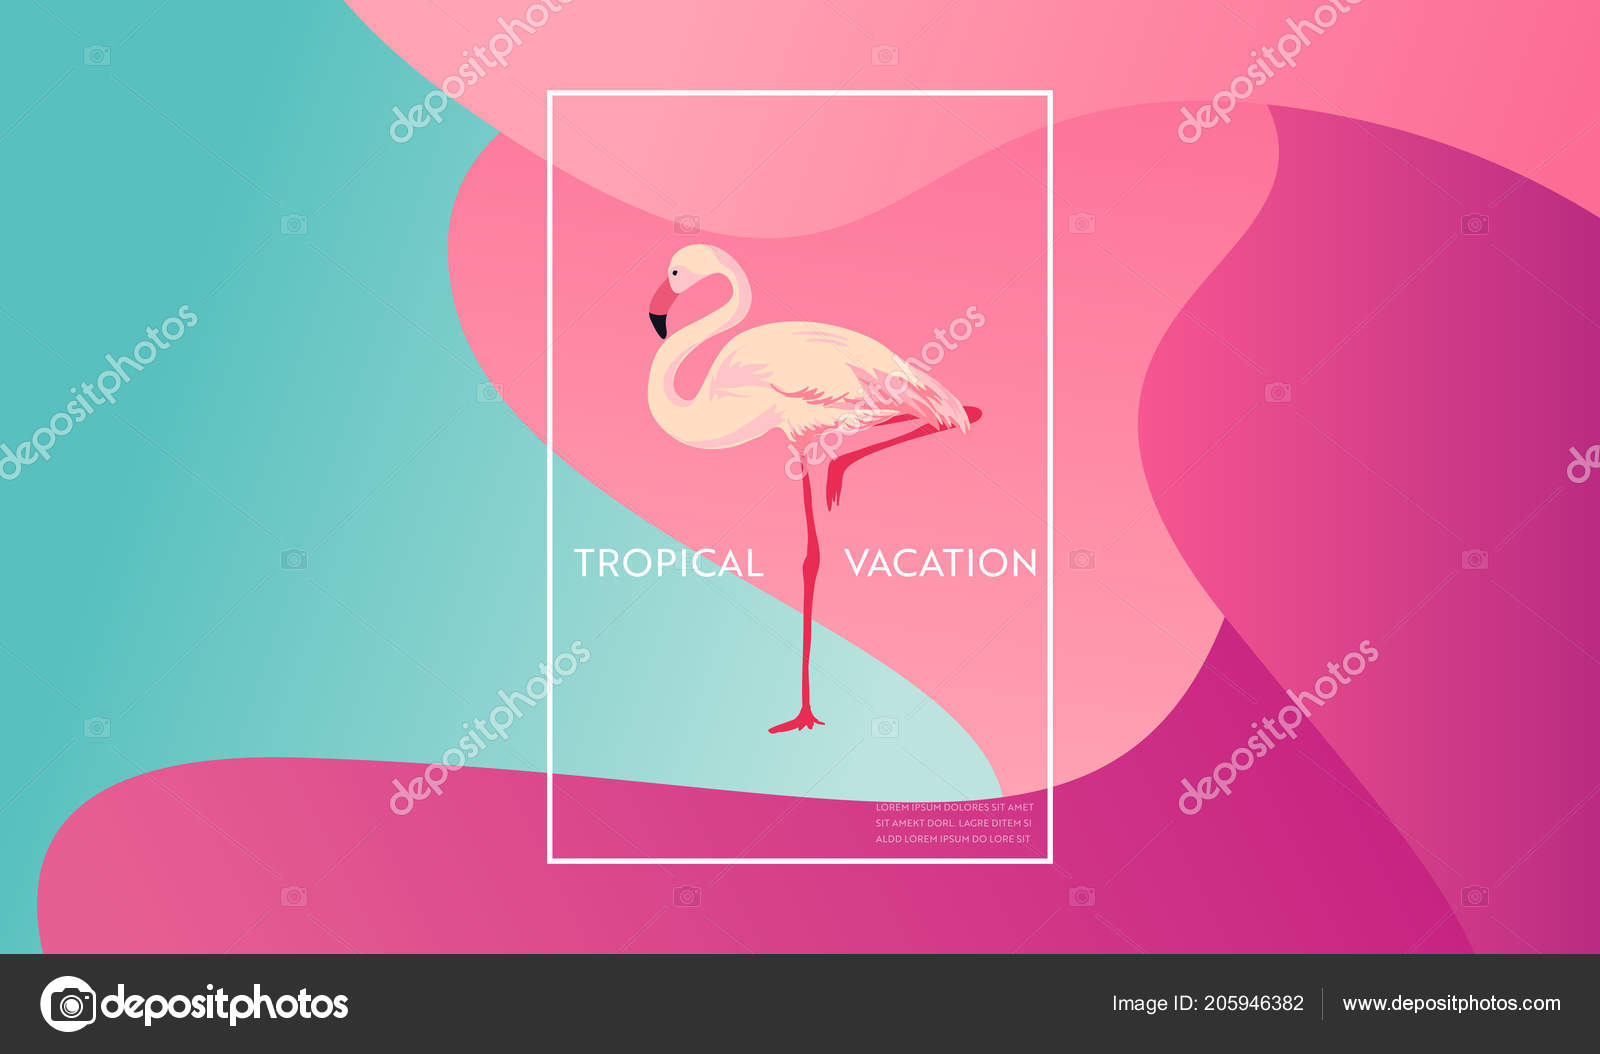 Tropical Vacation Layout with Flamingo Bird for Web, Landing Page ...